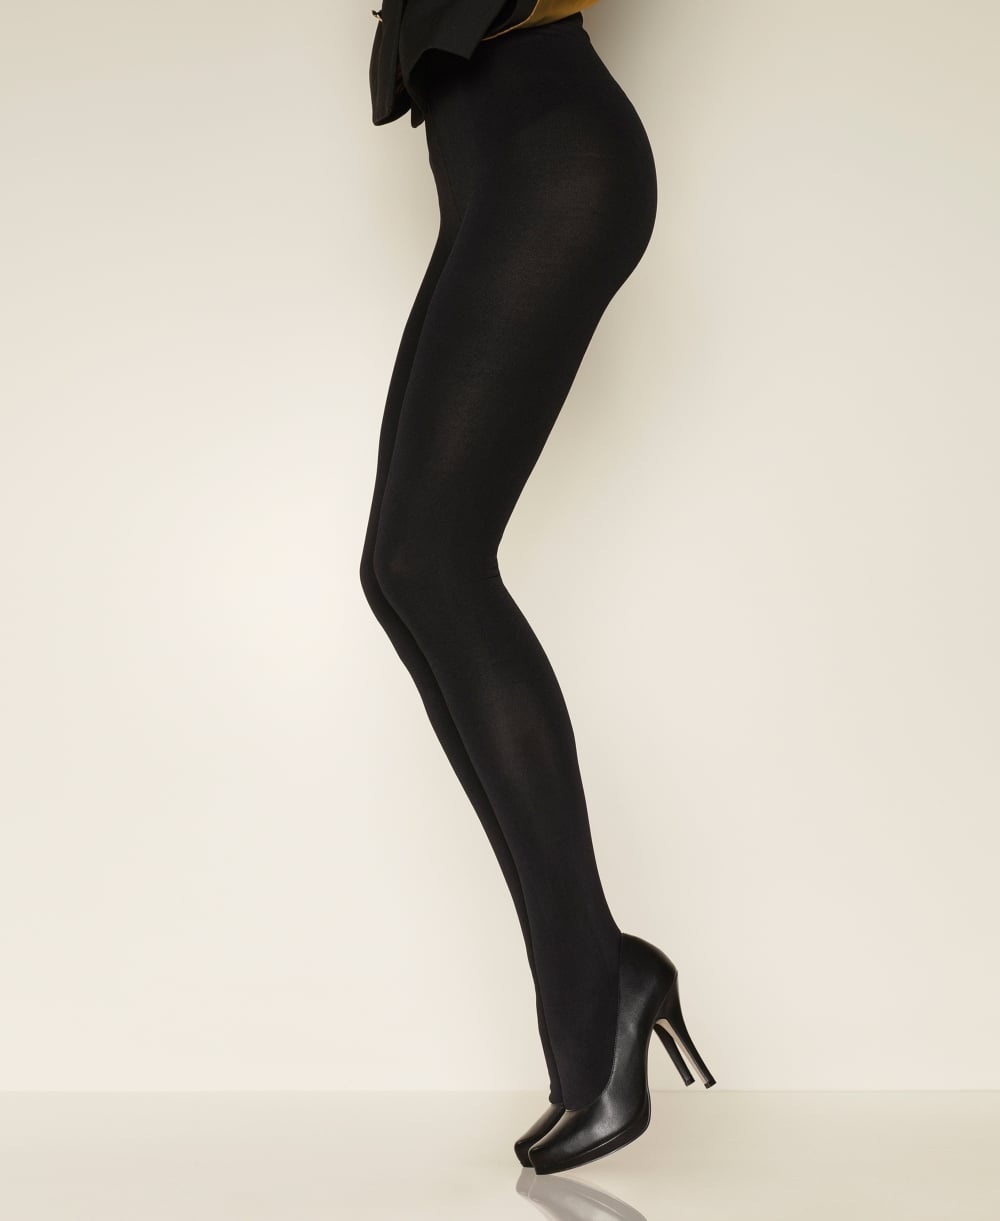 59b406a15c3 Gerbe Mat Galbe 80 Tights - Tights from luxury-legs.com UK